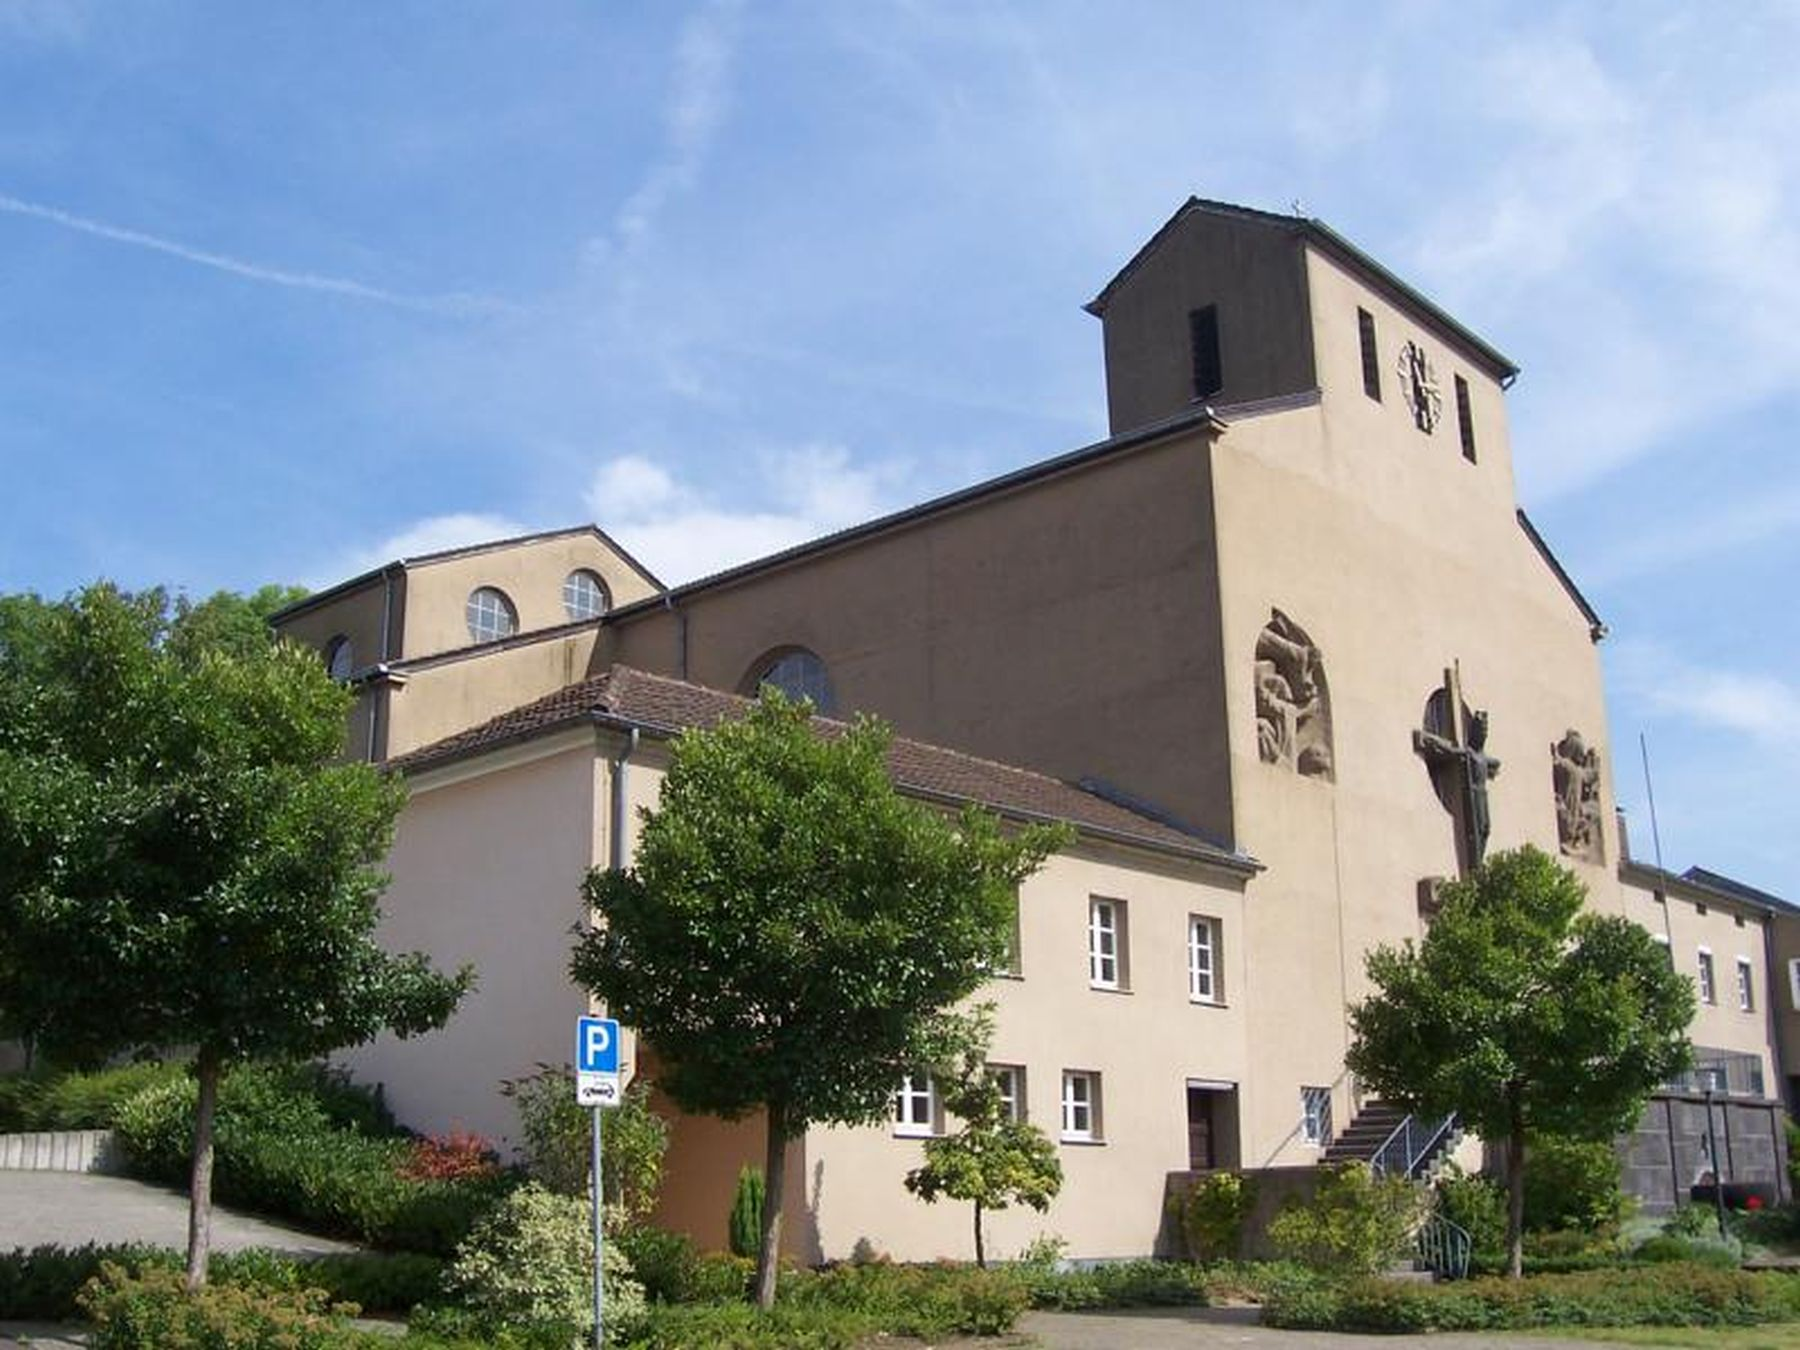 Kirche St. Agatha in Merchingen